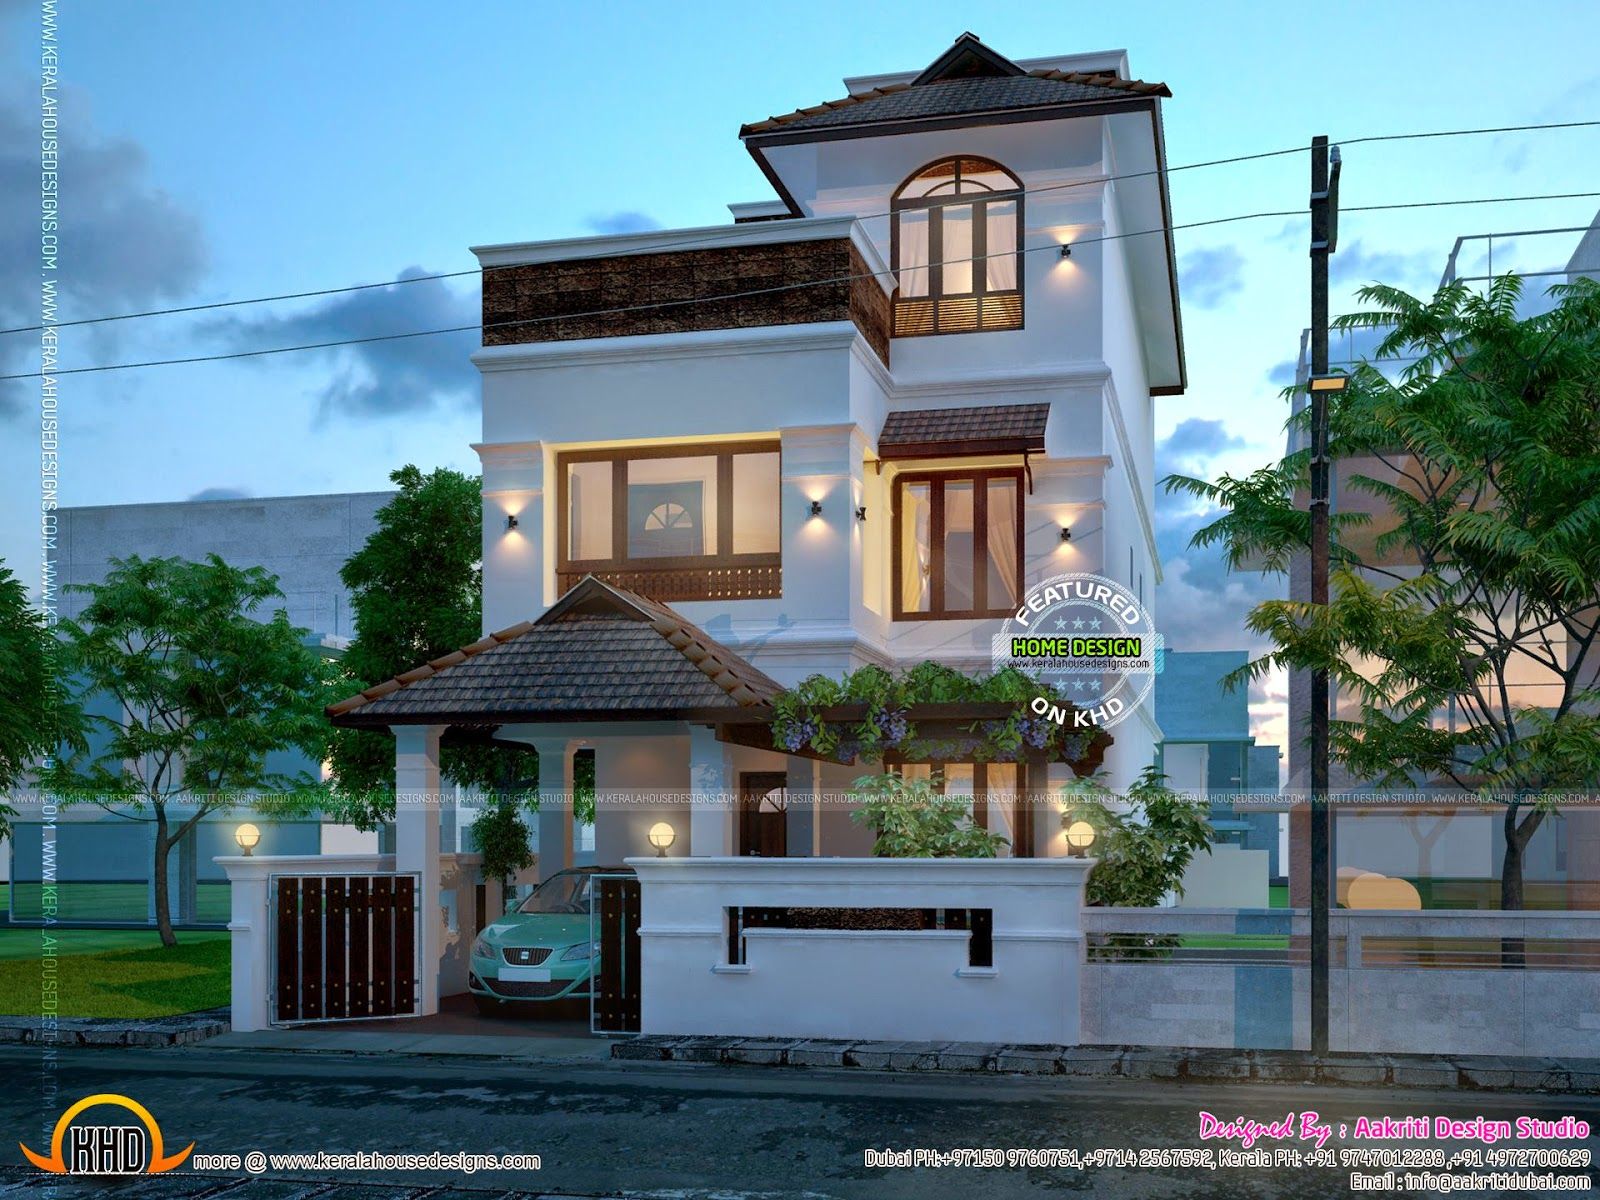 new house design - Home Design Pictures